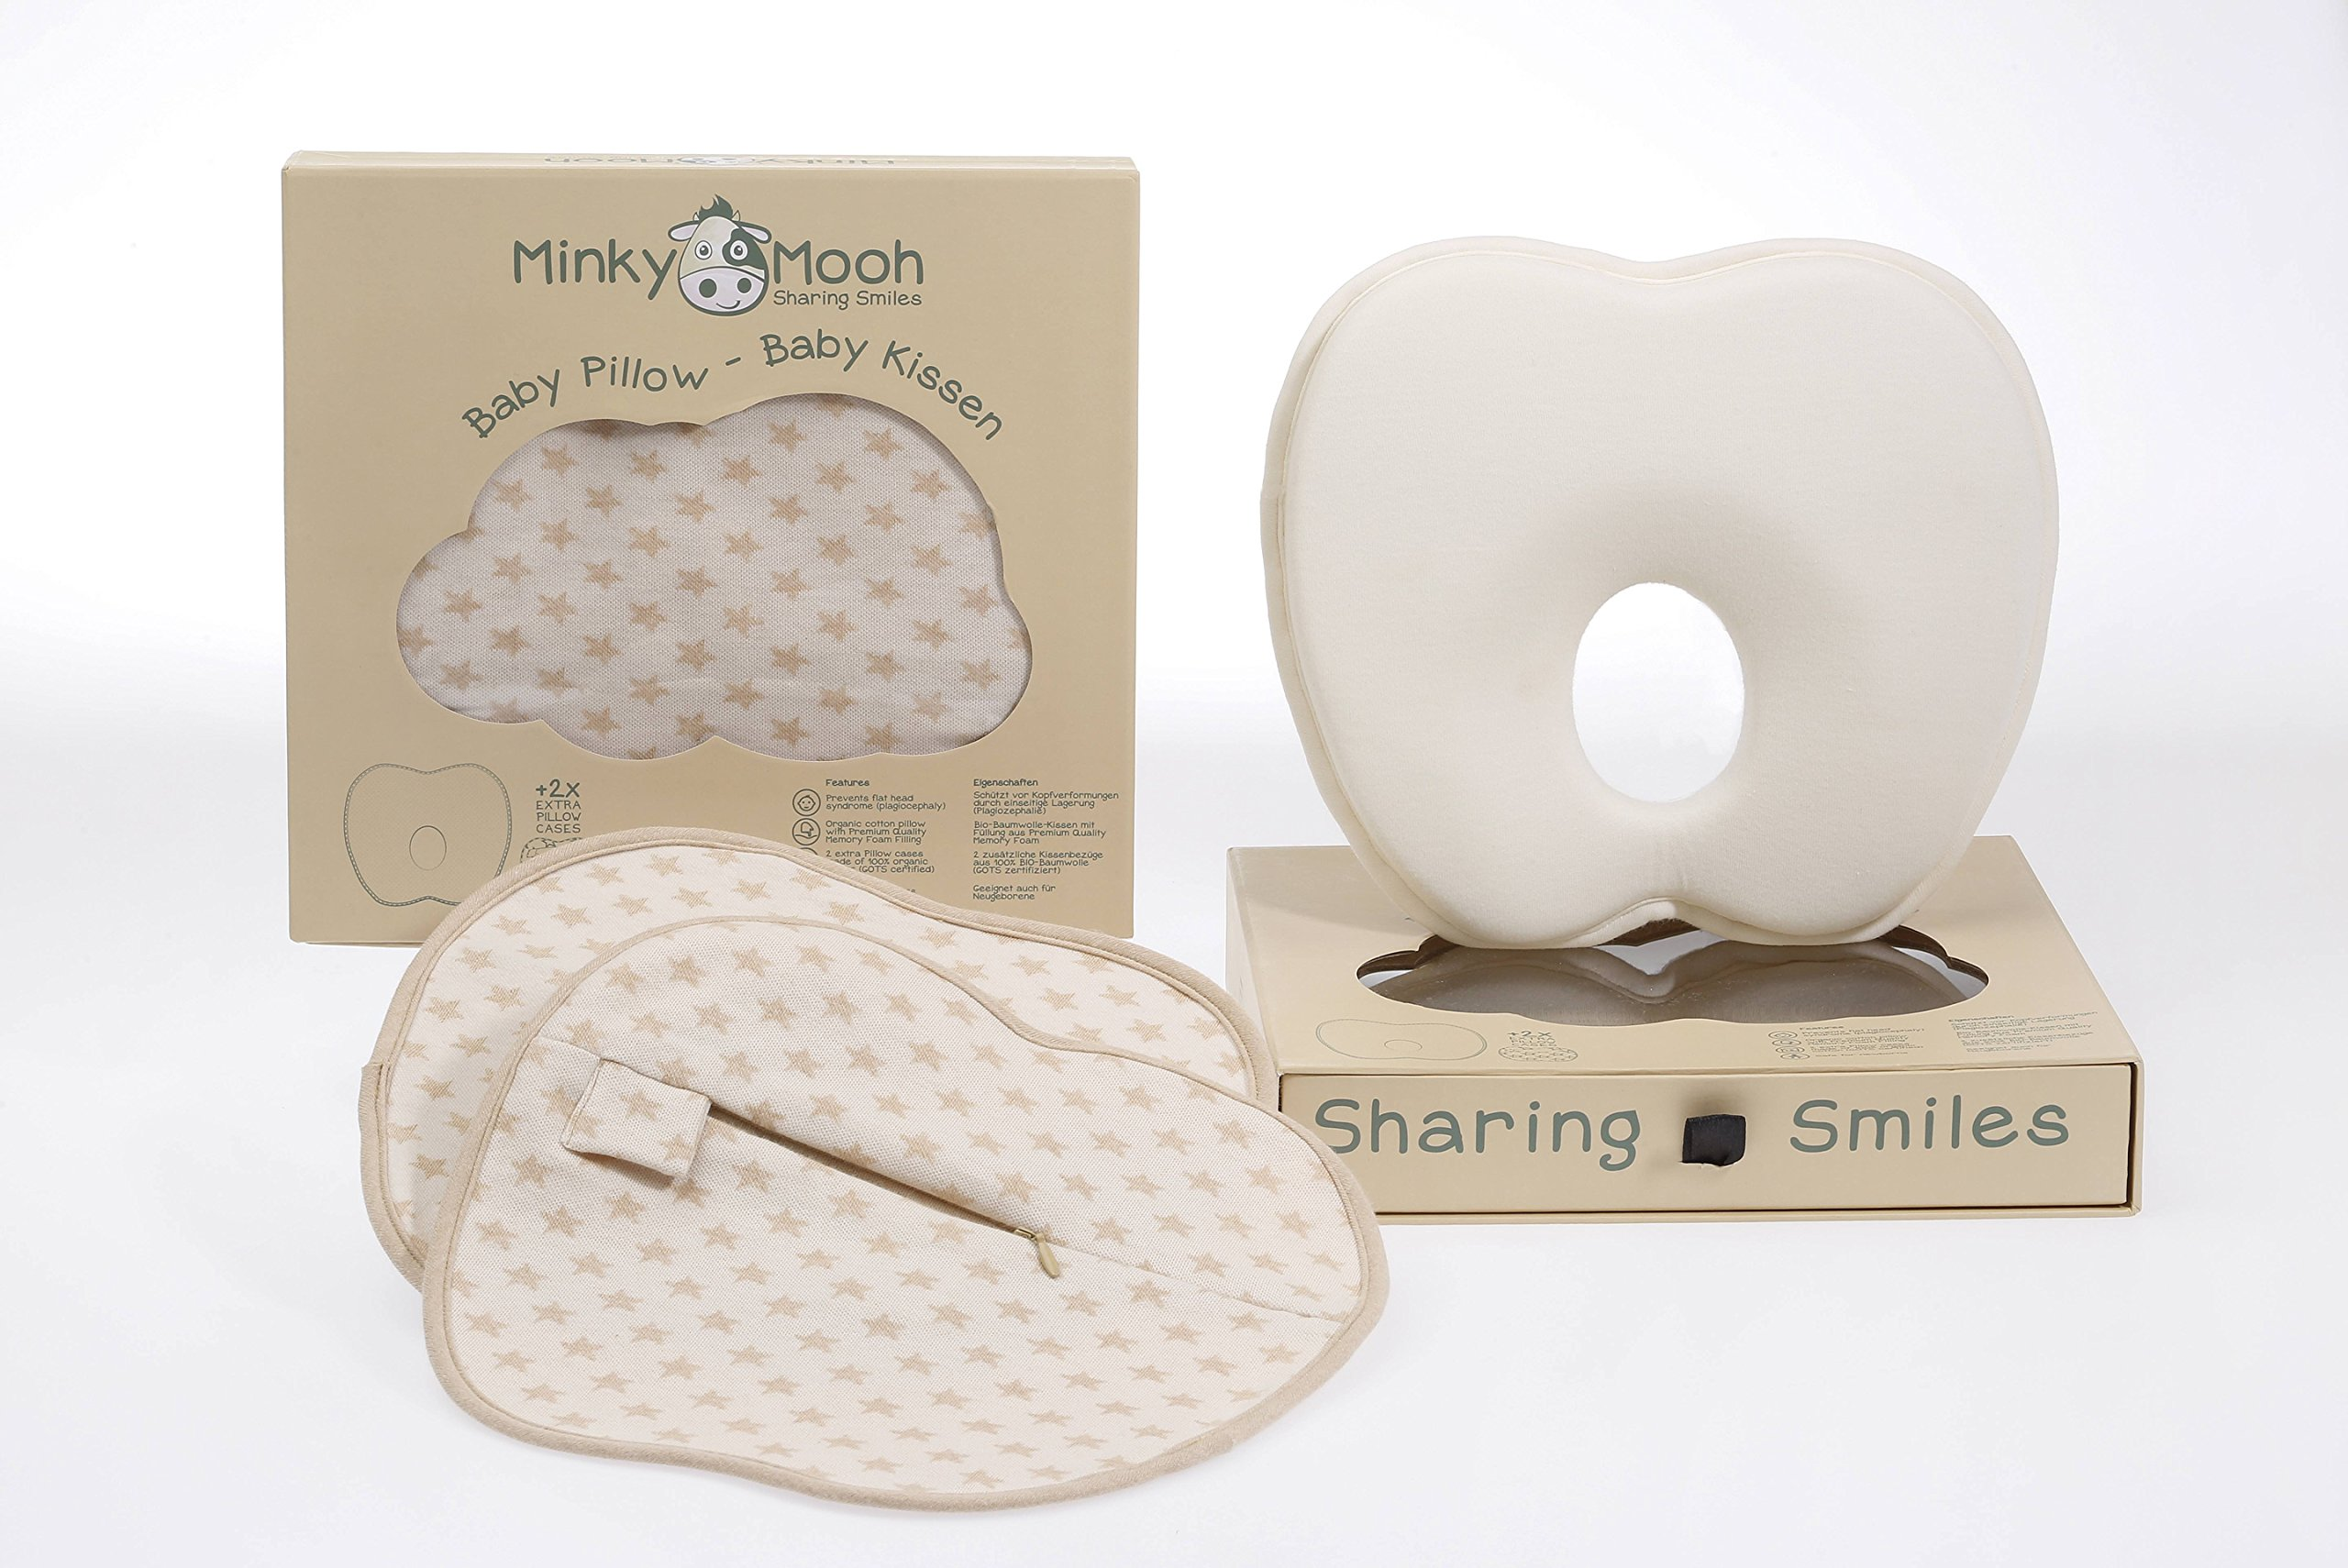 Baby Pillow Set to Prevent Flat Head - 2 Organic Cotton Cases | Reduces Plagiocephaly + Supports Newborn Natural Head Shape …